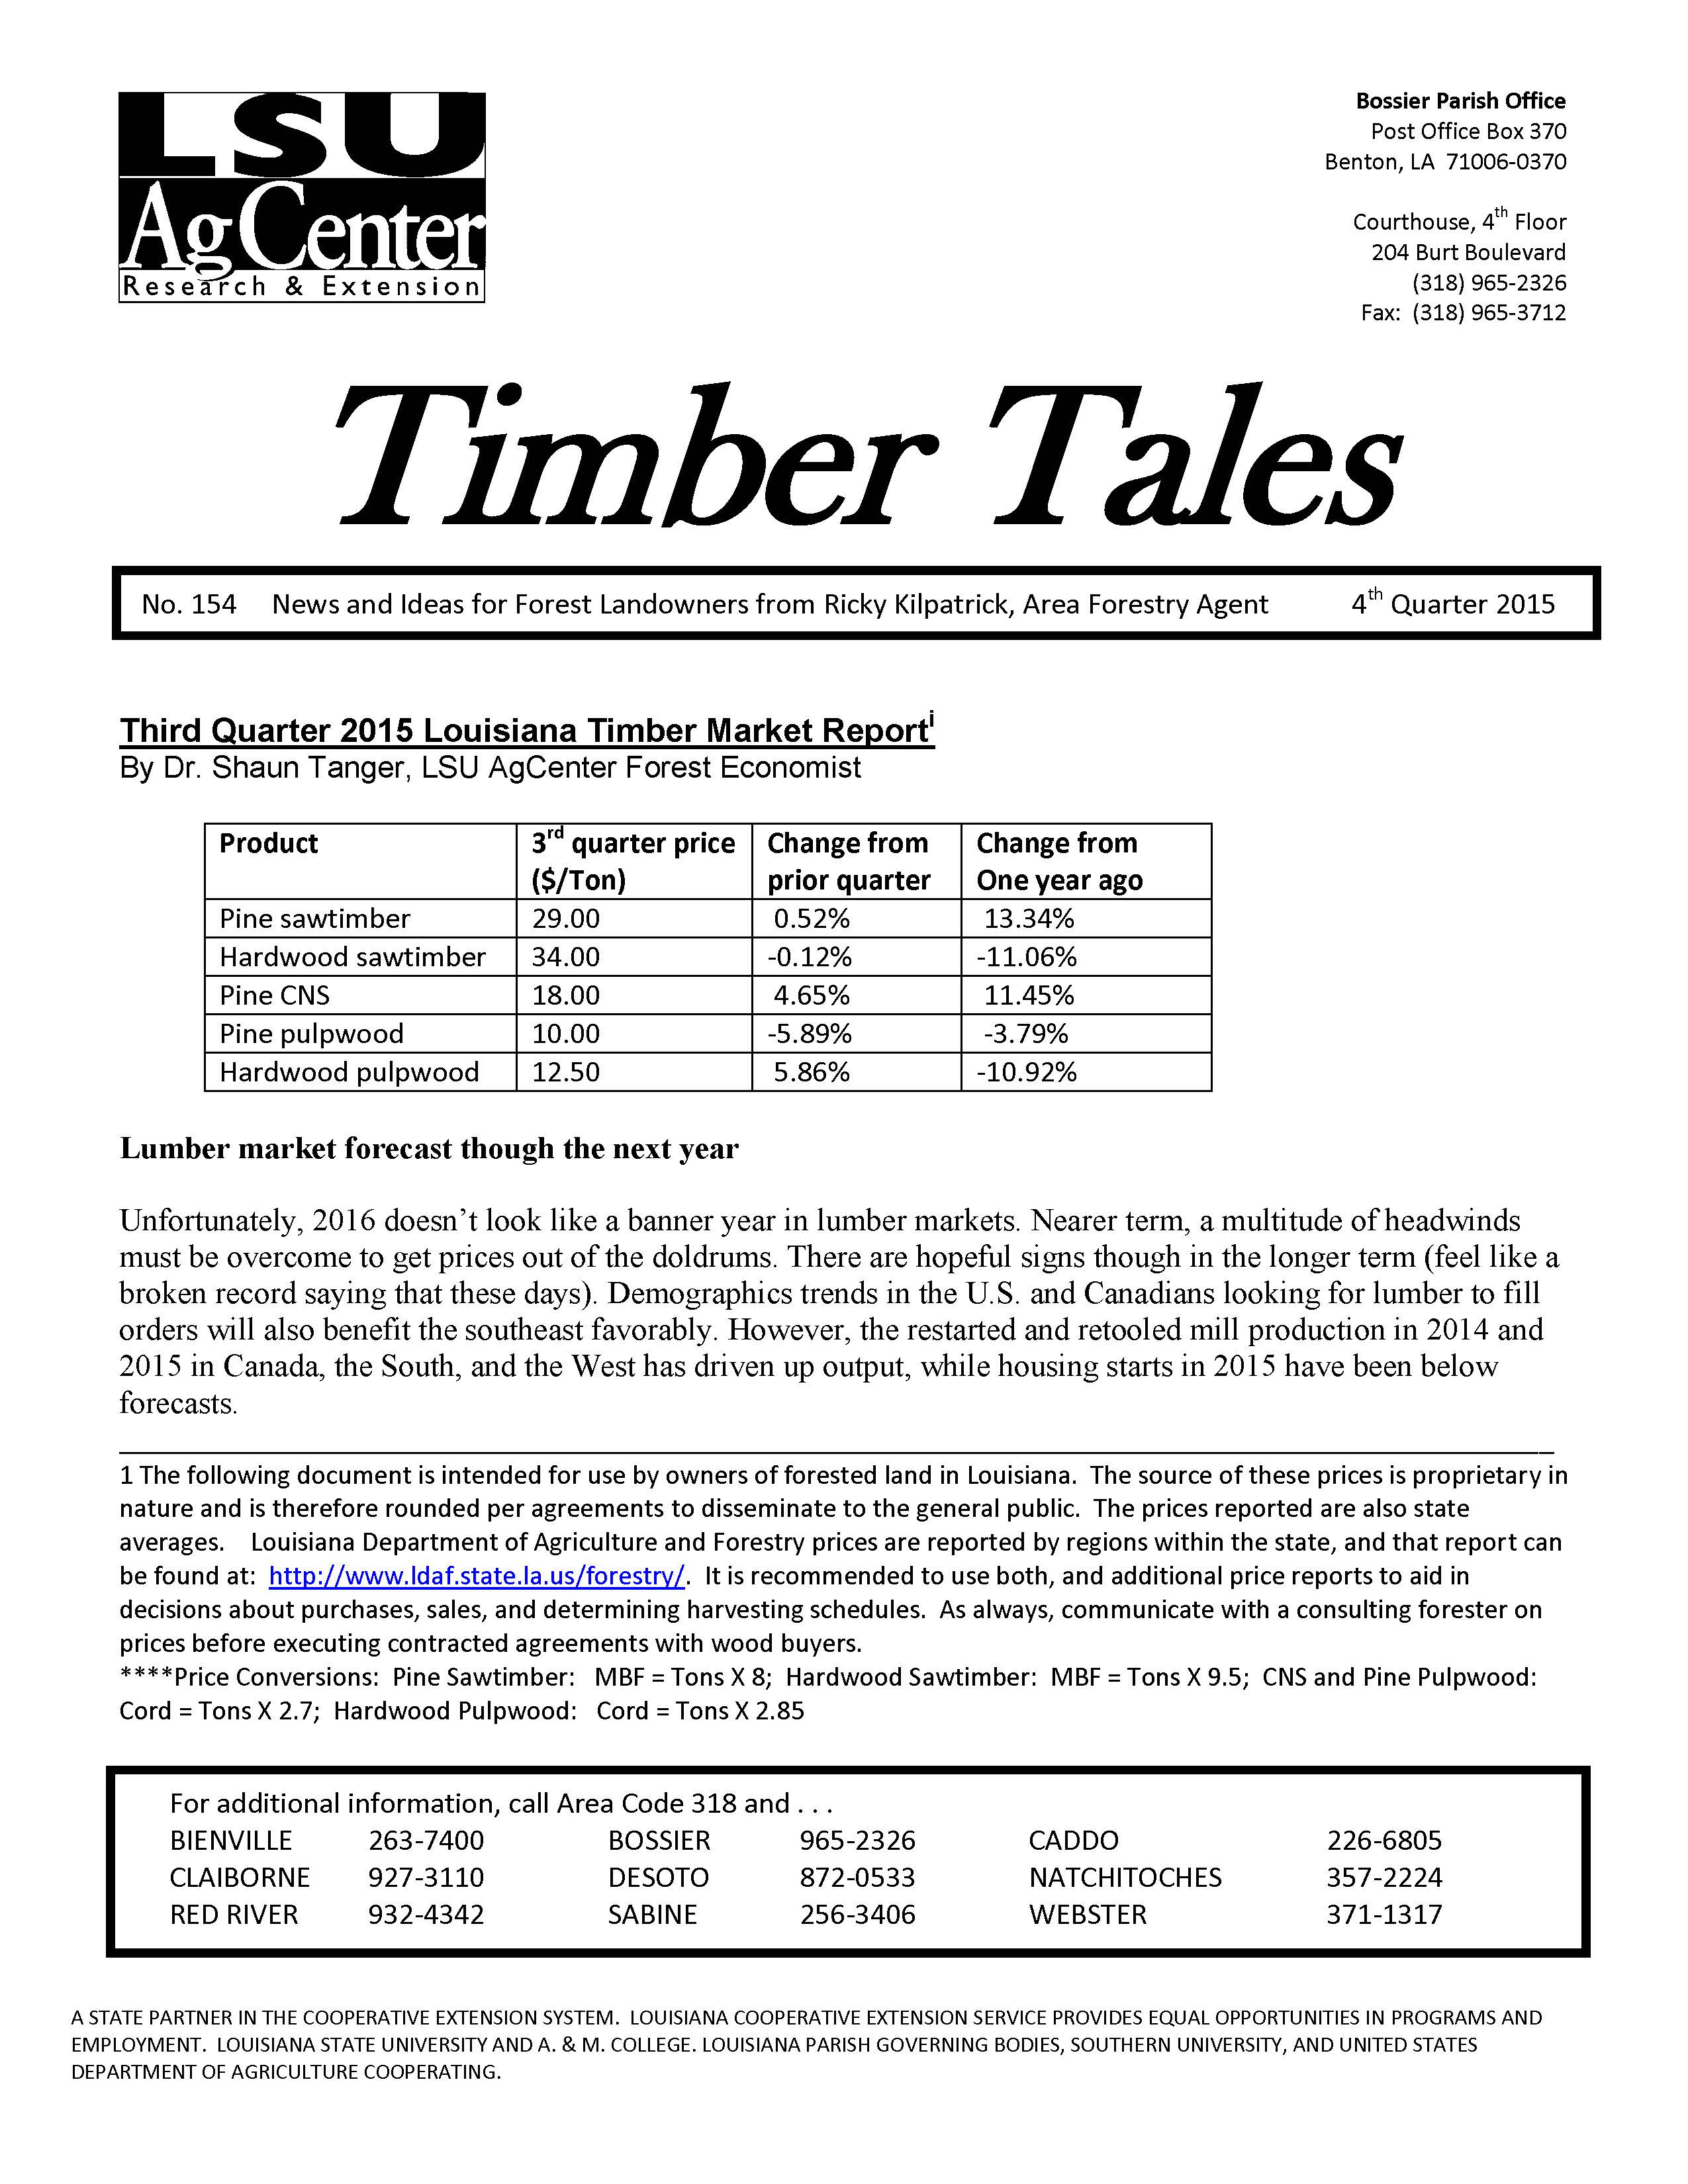 2015 Timber Tales Newsletters